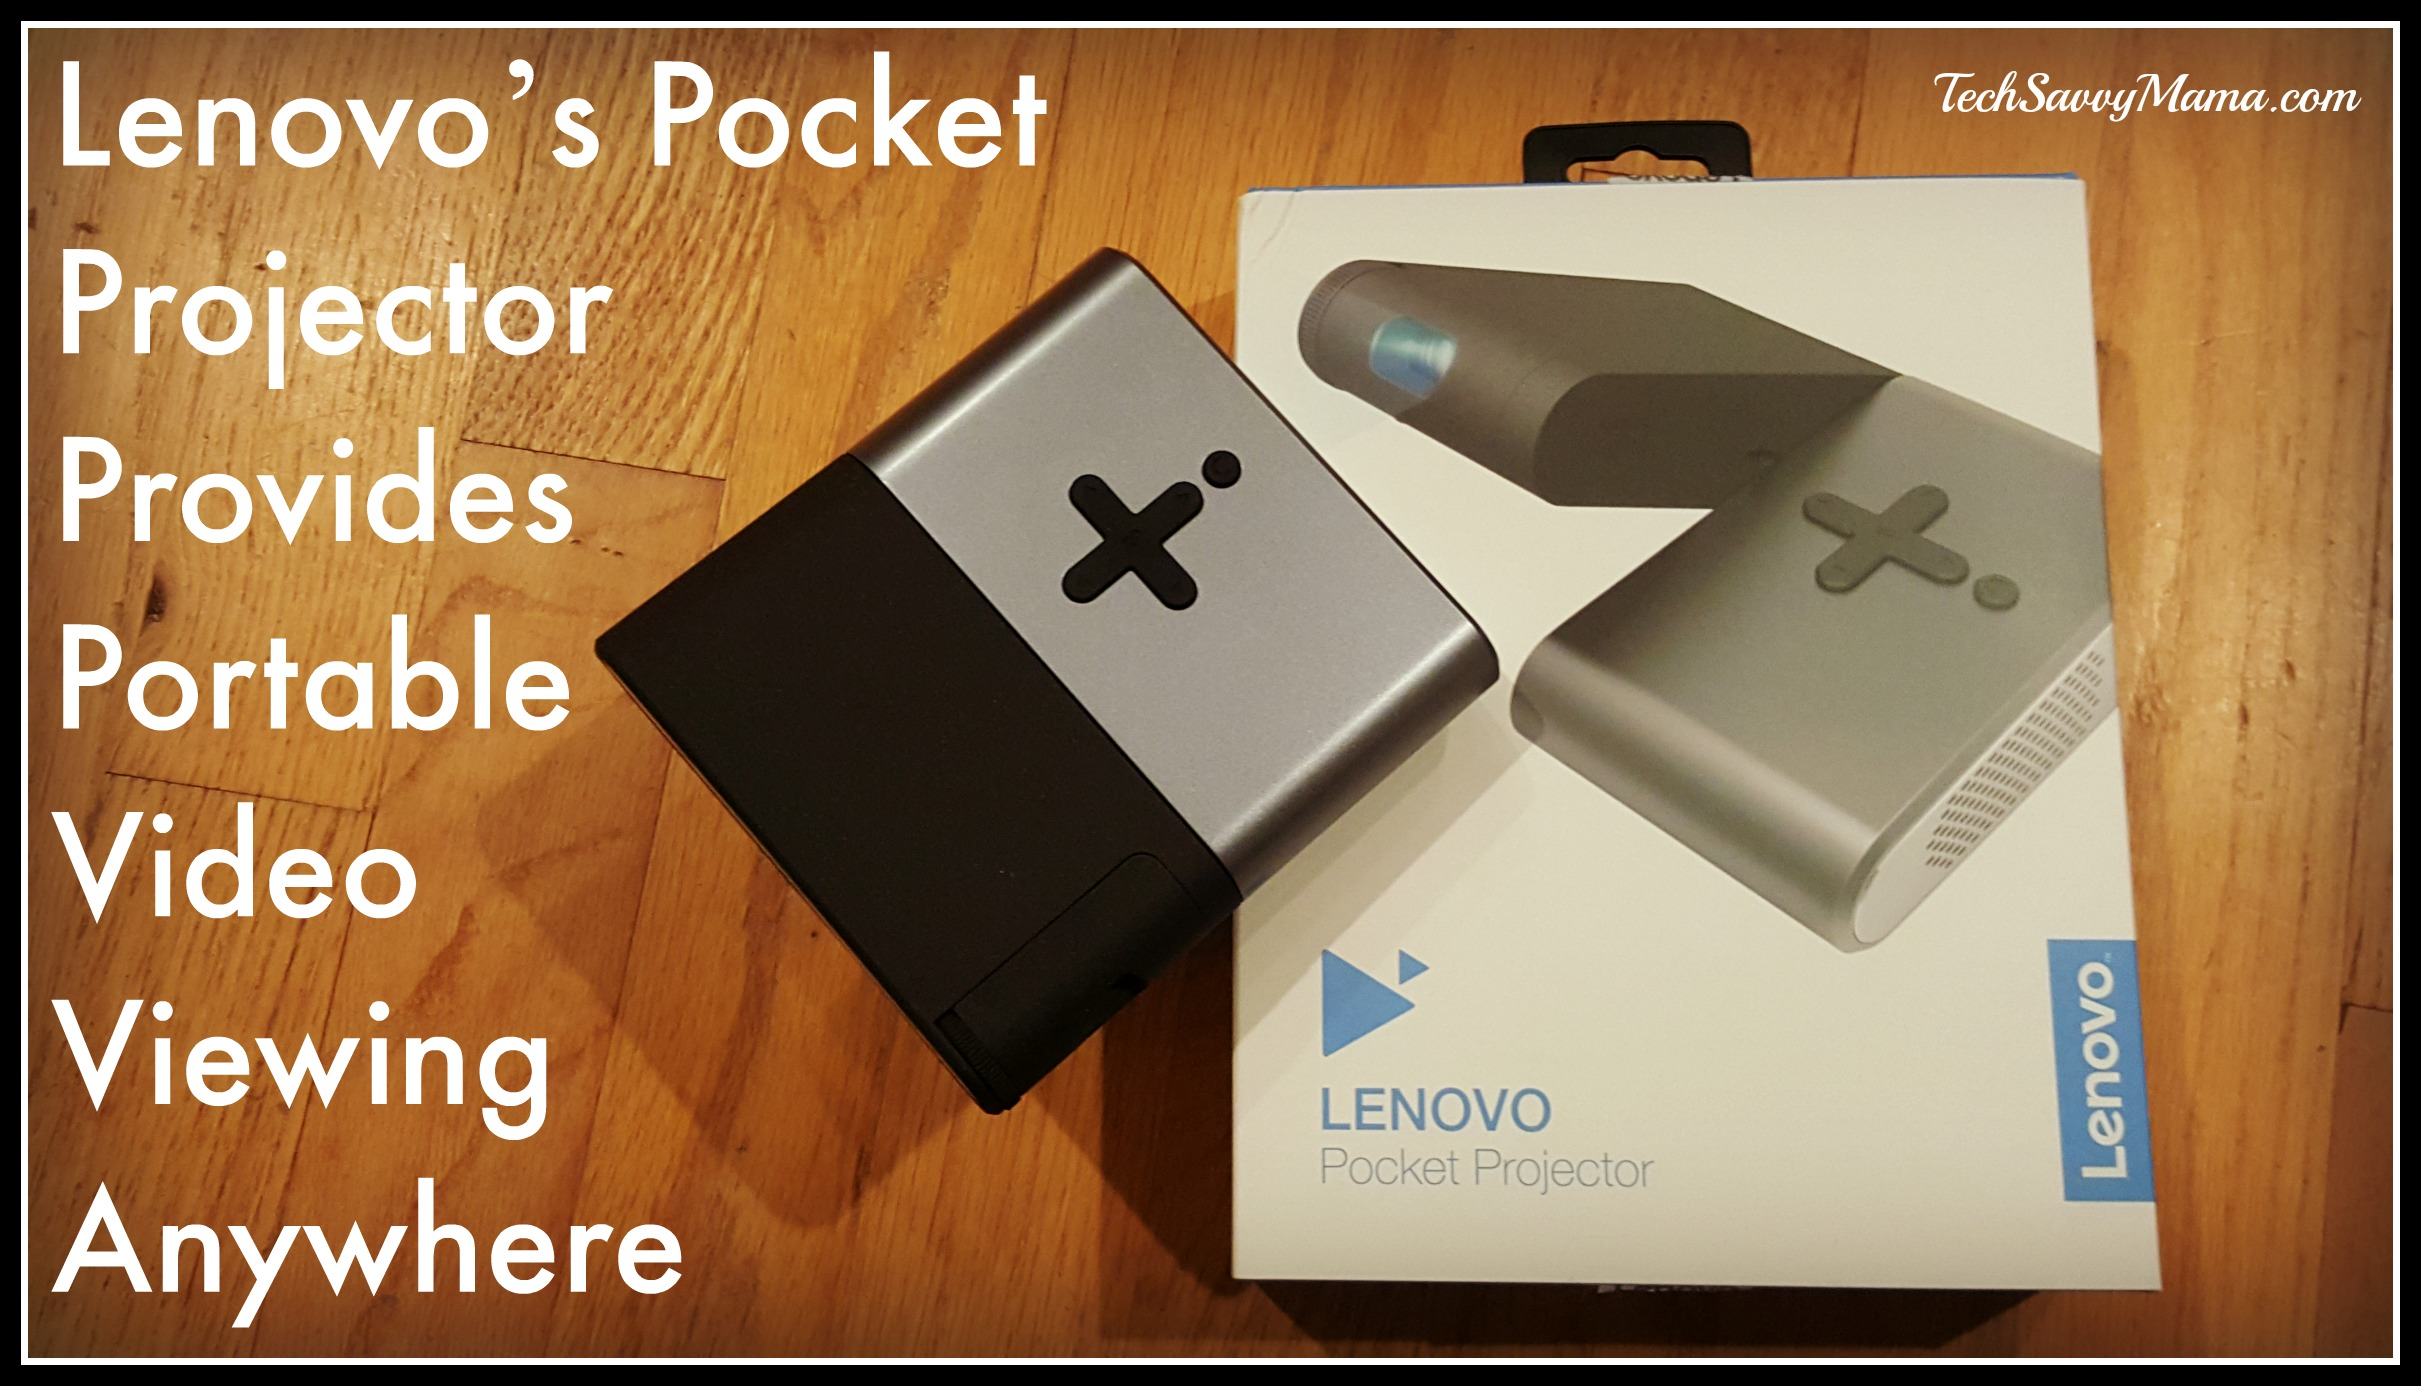 Lenovo's Pocket Projector: Portable Video Viewing Anywhere